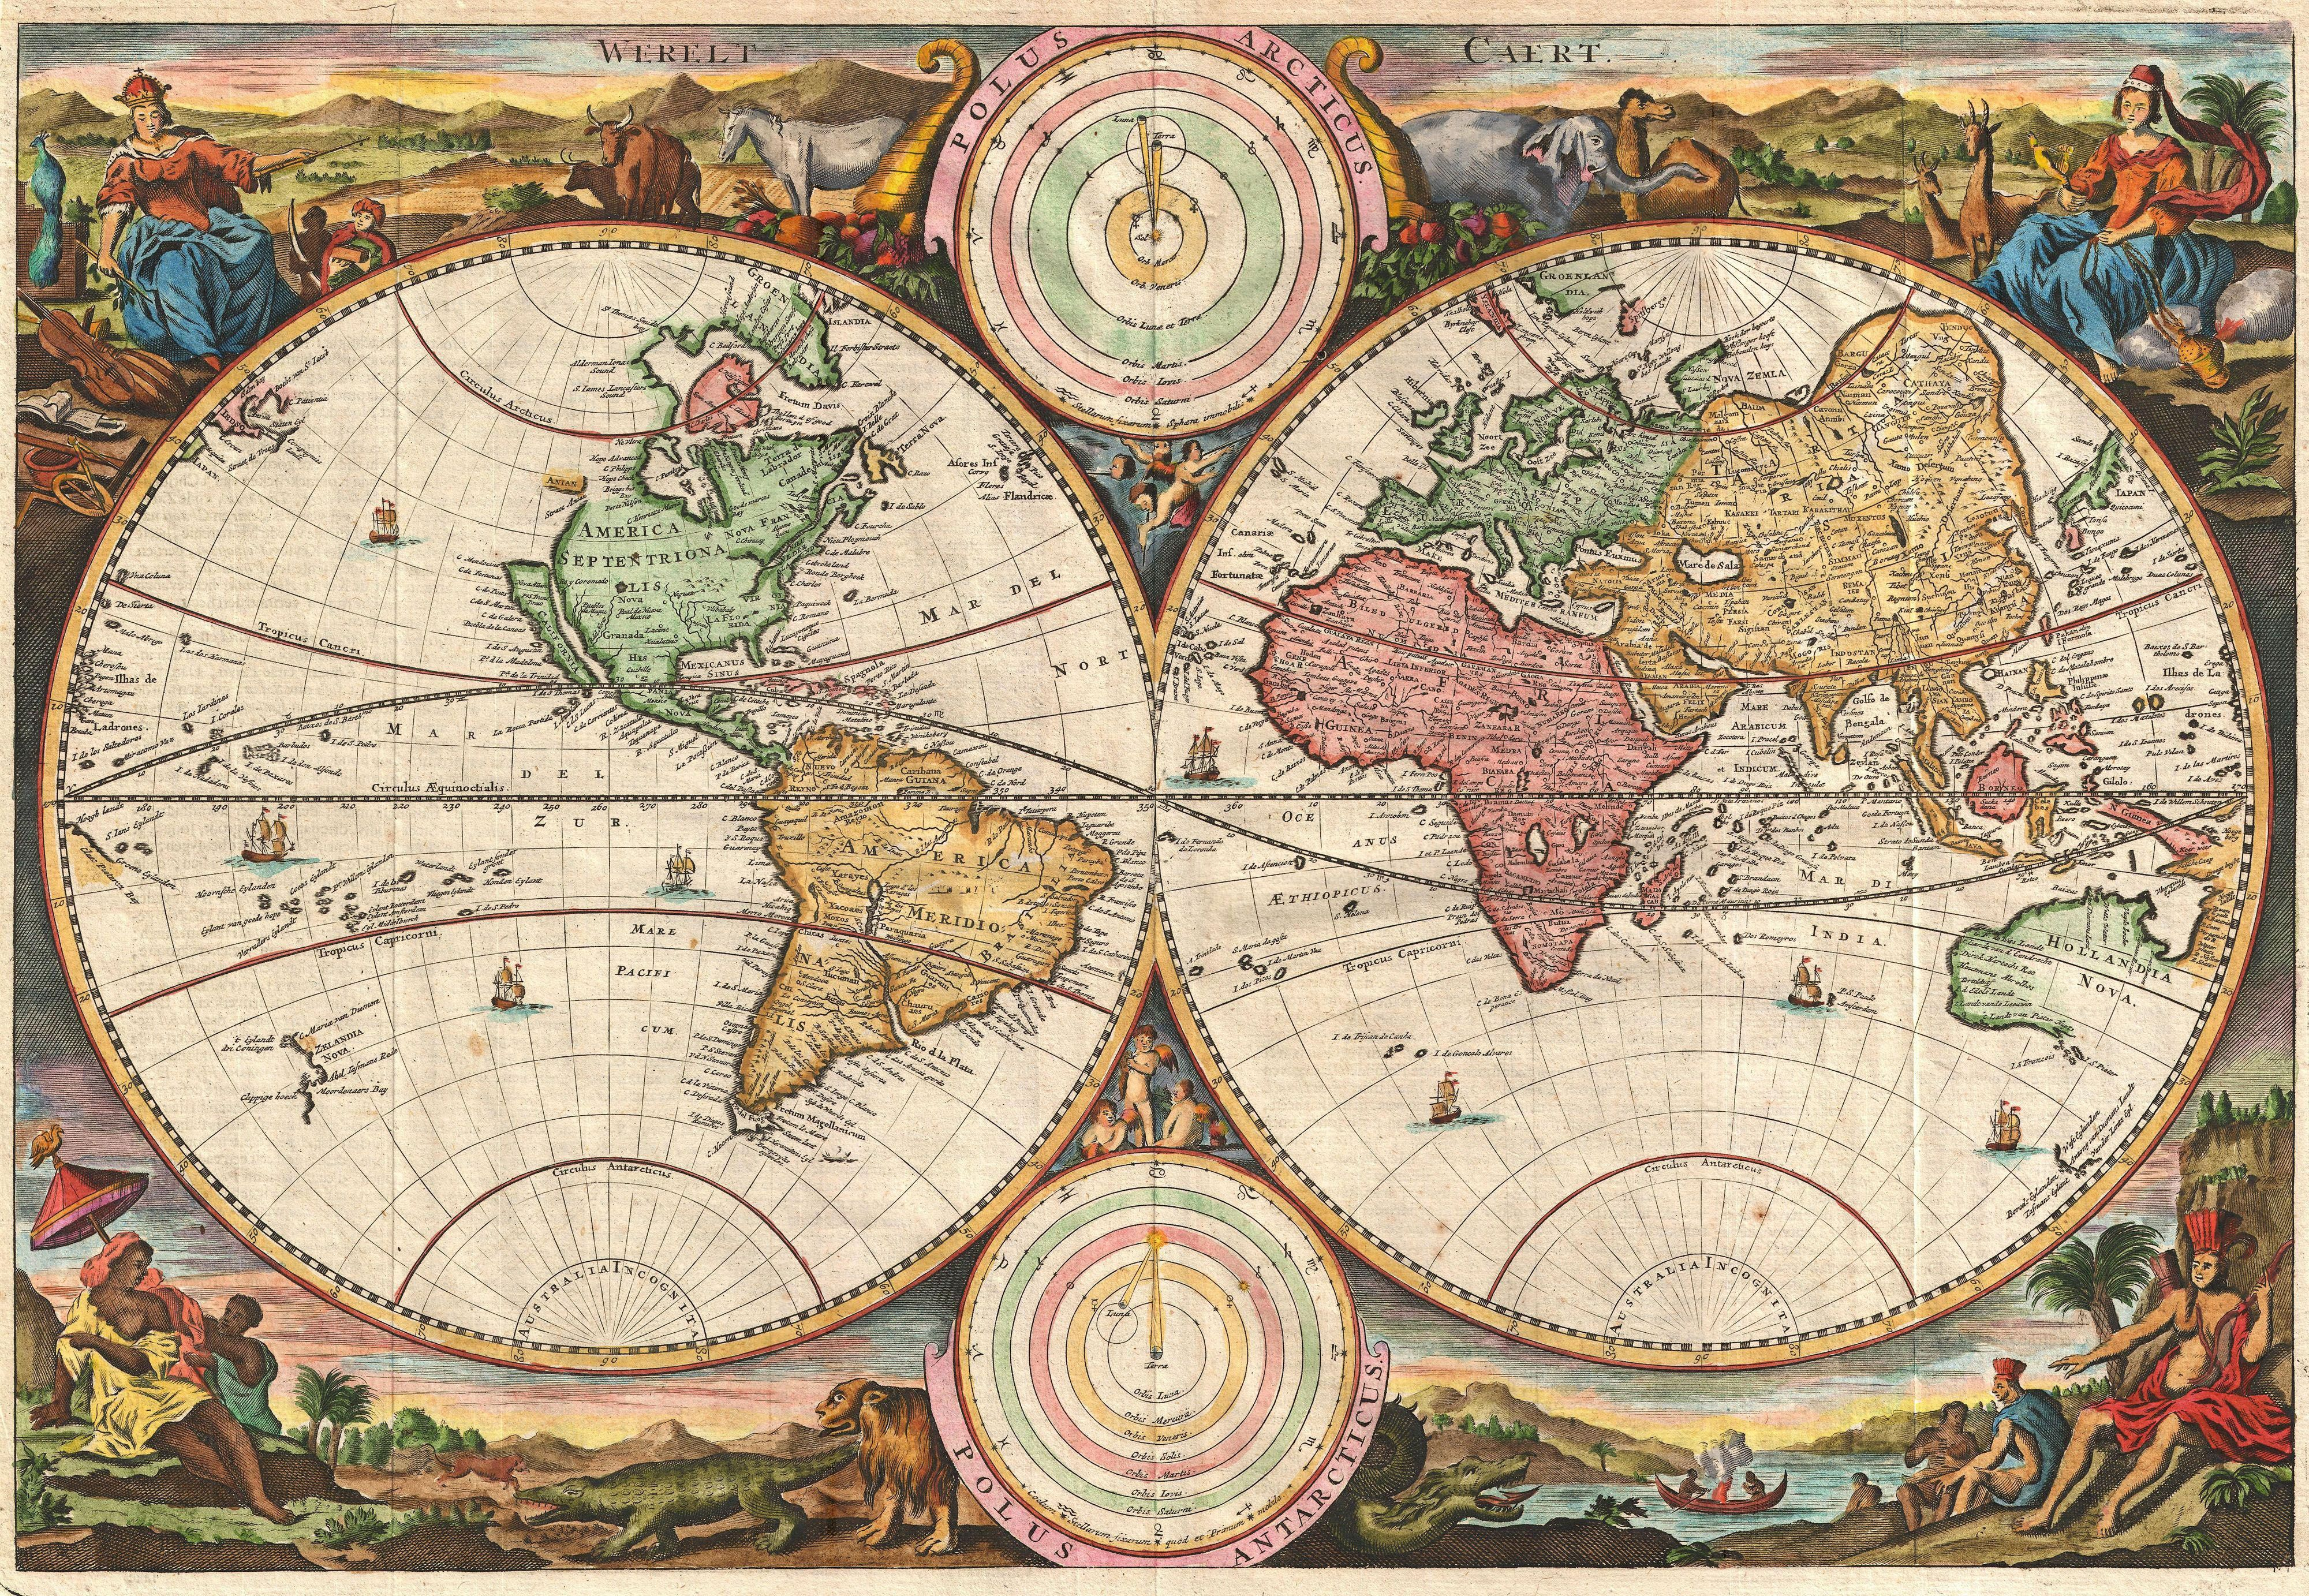 File1730 stoopendaal map of the world in two hemispheres file1730 stoopendaal map of the world in two hemispheres geographicus wereltcaert gumiabroncs Image collections